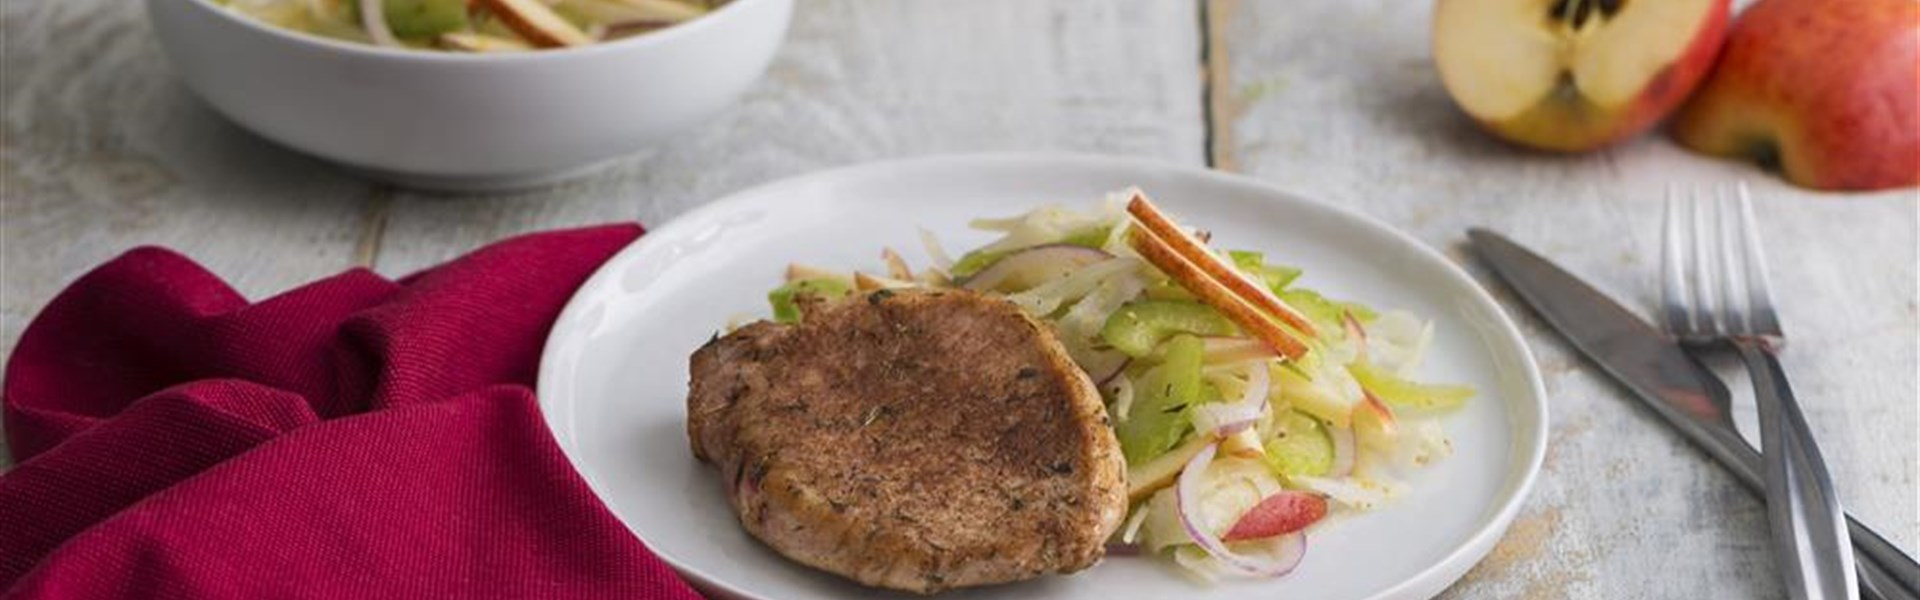 Spiced Pork Chops with Apple Fennel Slaw